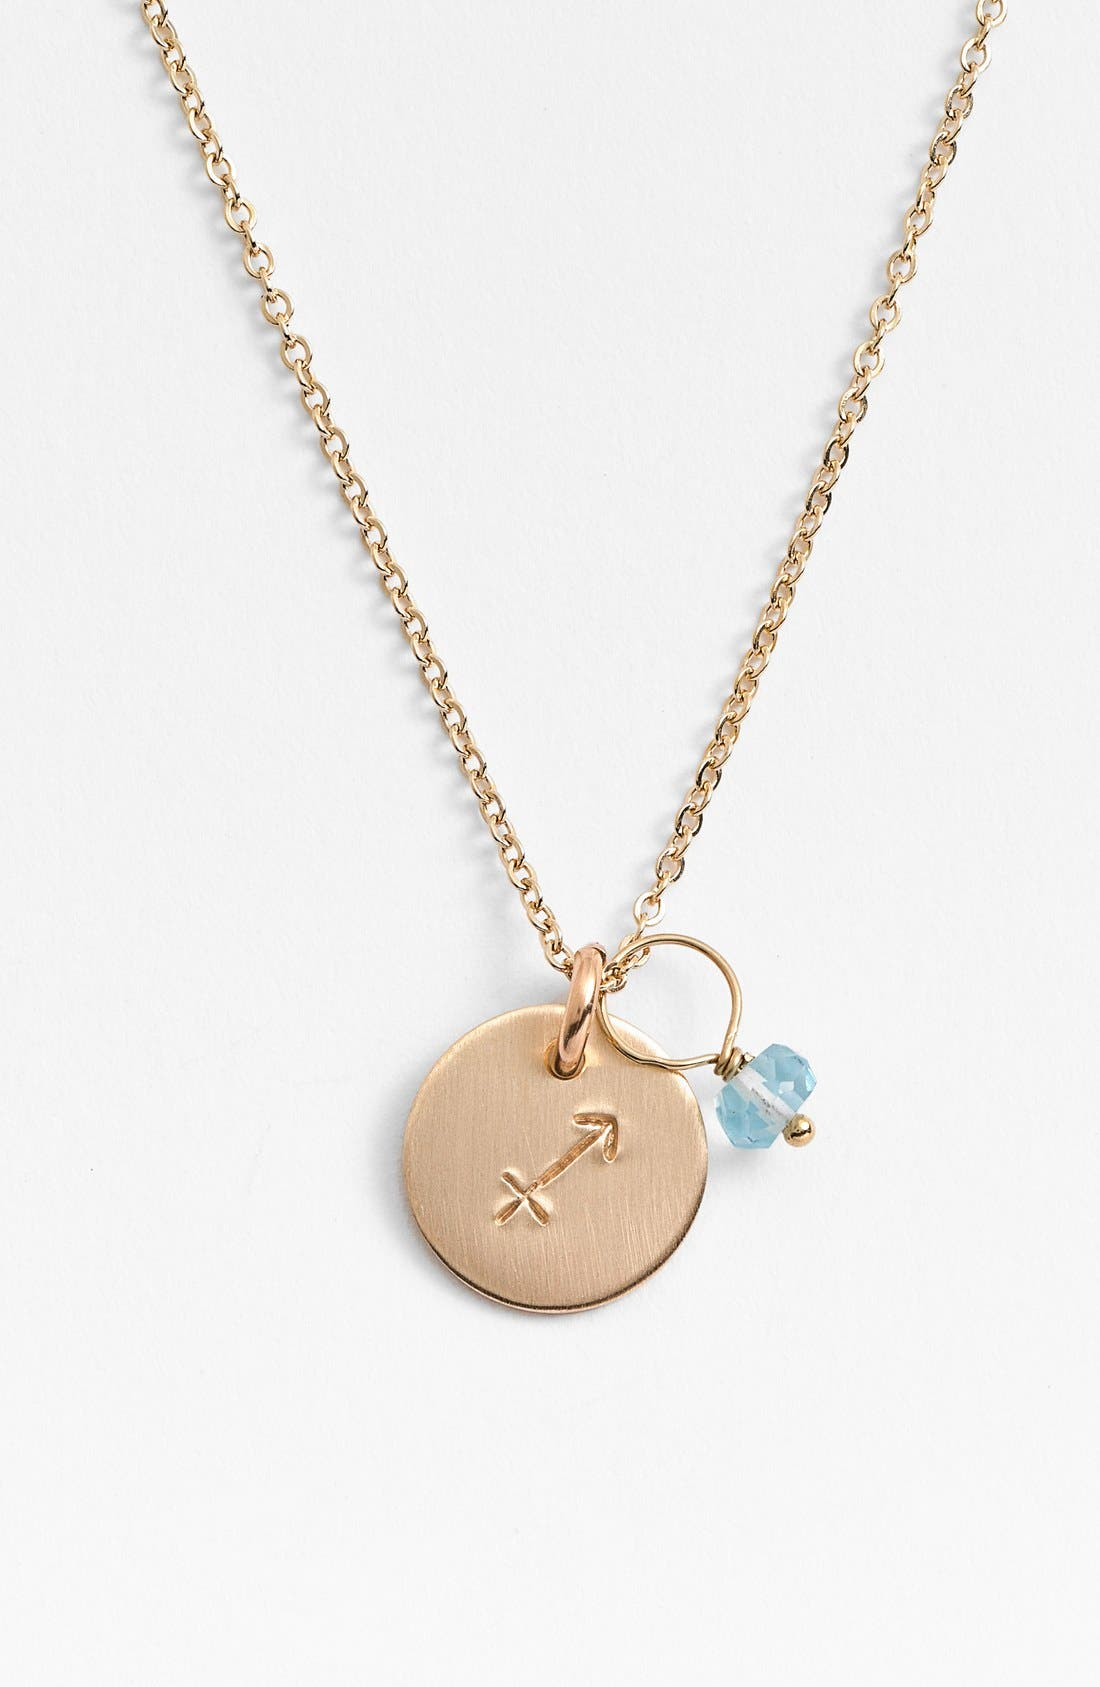 14k-Gold Fill & Semiprecious Birthstone Zodiac Mini Disc Necklace,                         Main,                         color, Sagittarius